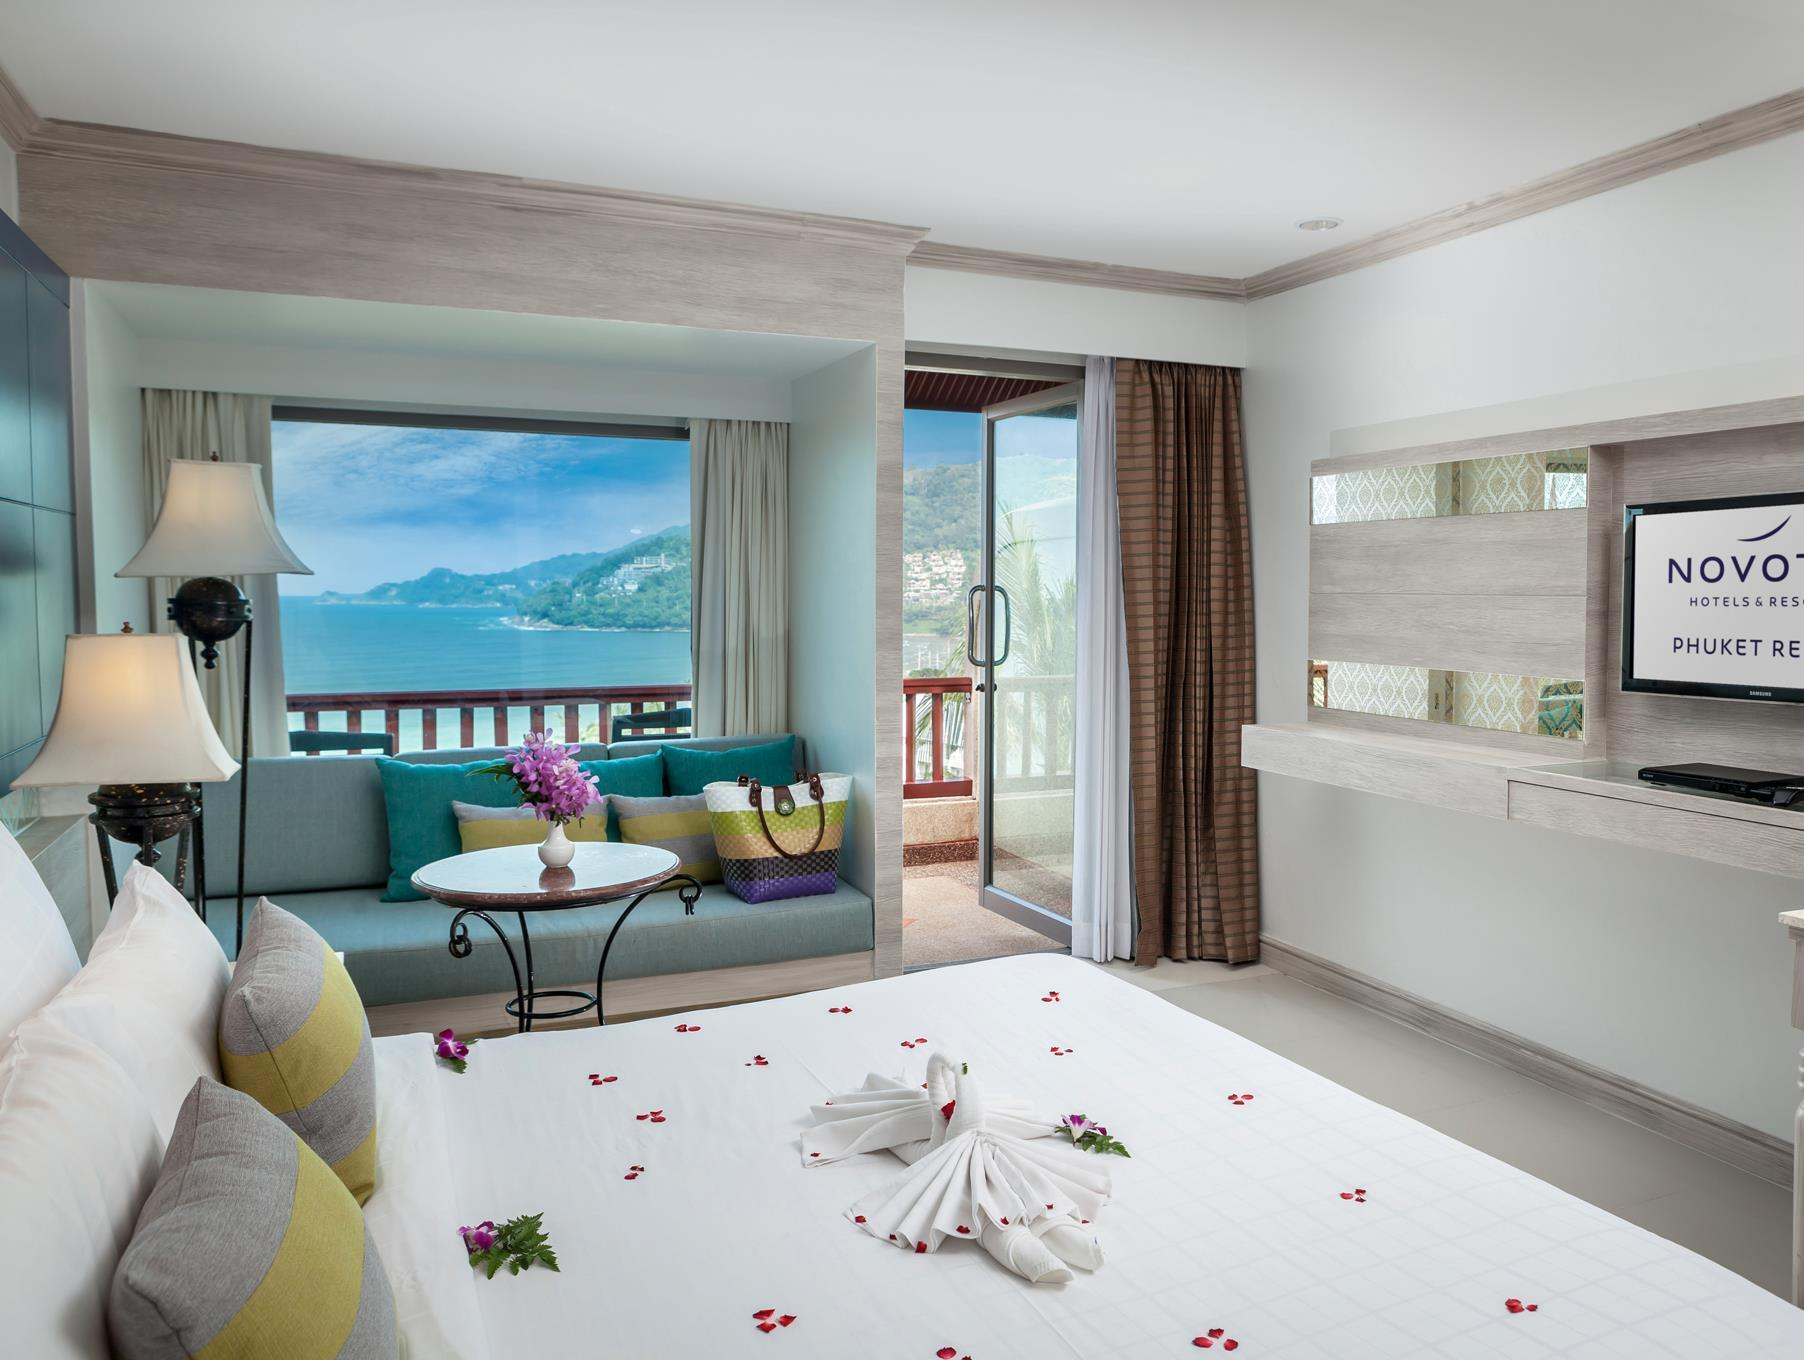 Superior Double Pemandangan Samudra (Superior Double Ocean View)